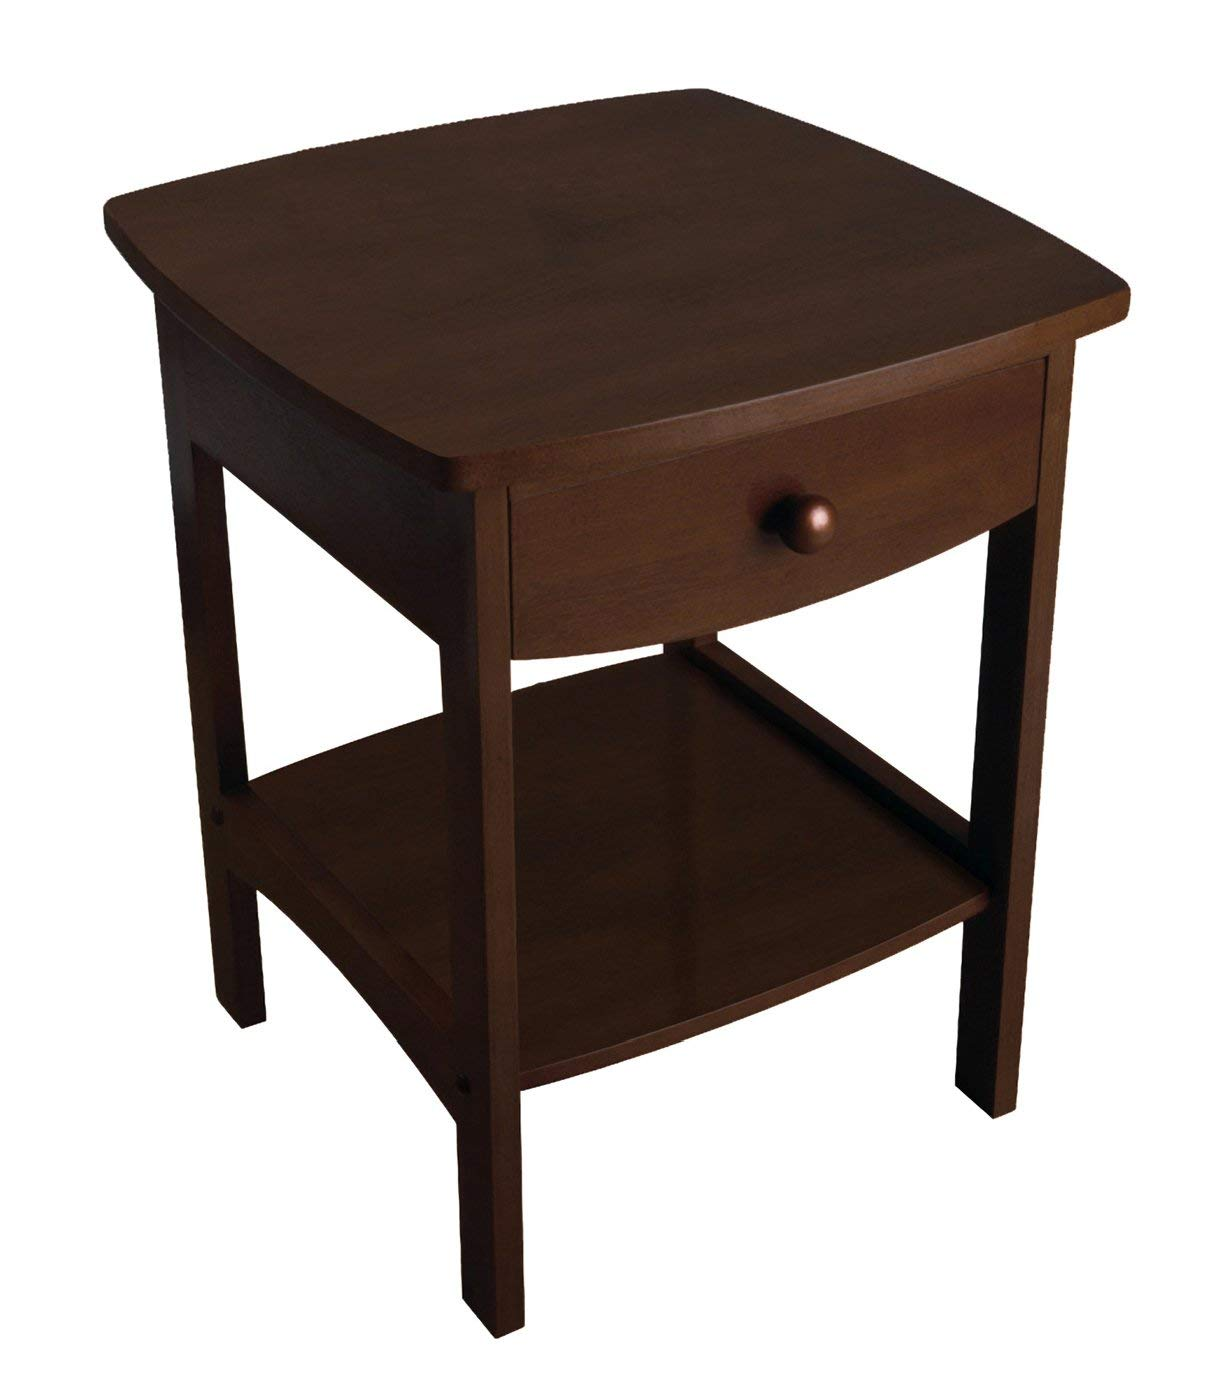 winsome wood claire accent table walnut kitchen eugene dining pottery barn benchwright end industrial style tables mercury lamp long tall console white desk with drawers lamps